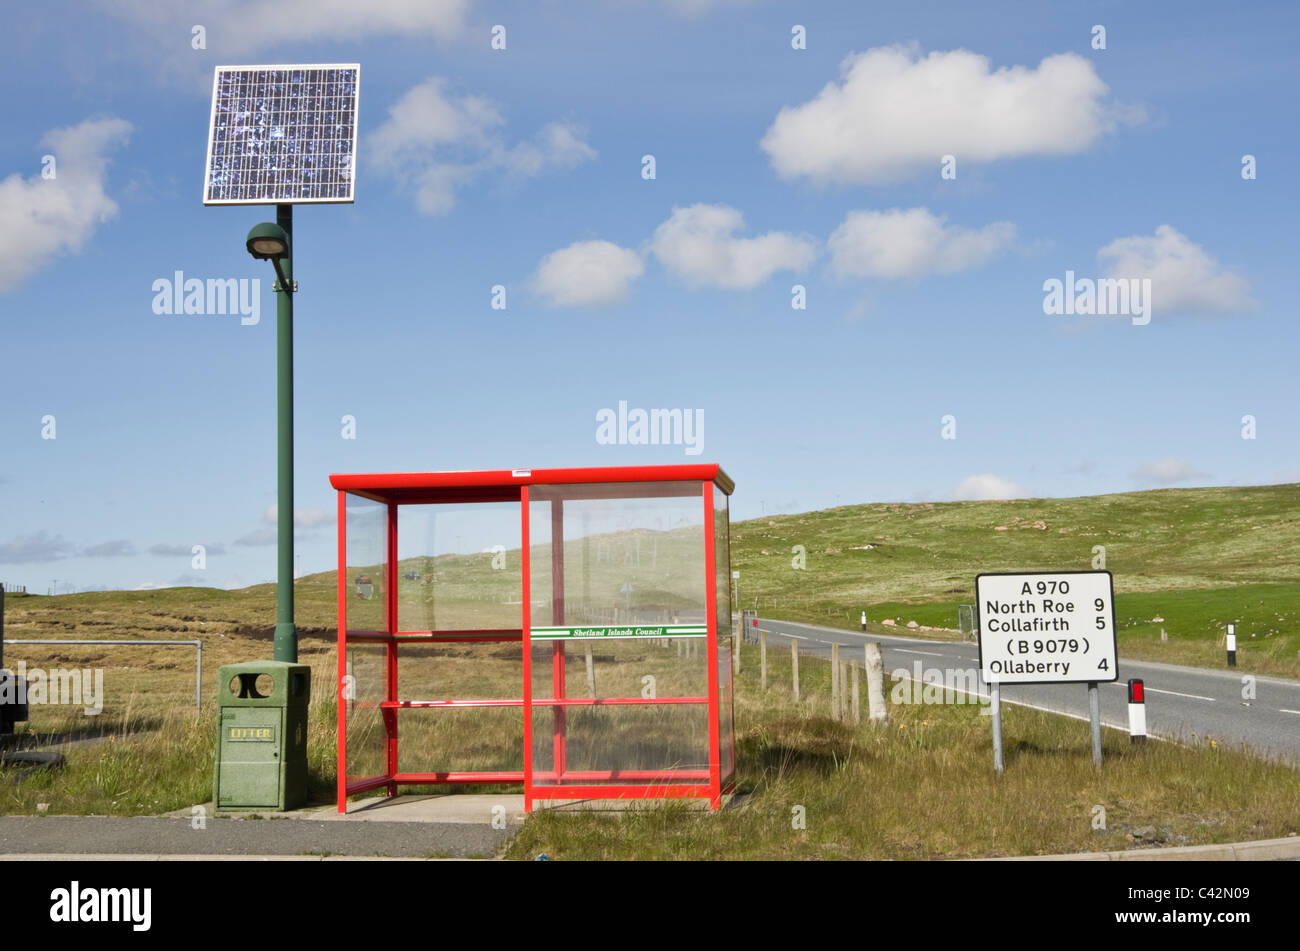 Rural bus shelter on a country road with street light powered by a solar panel. Northmavine, Shetland Islands, Scotland, - Stock Image